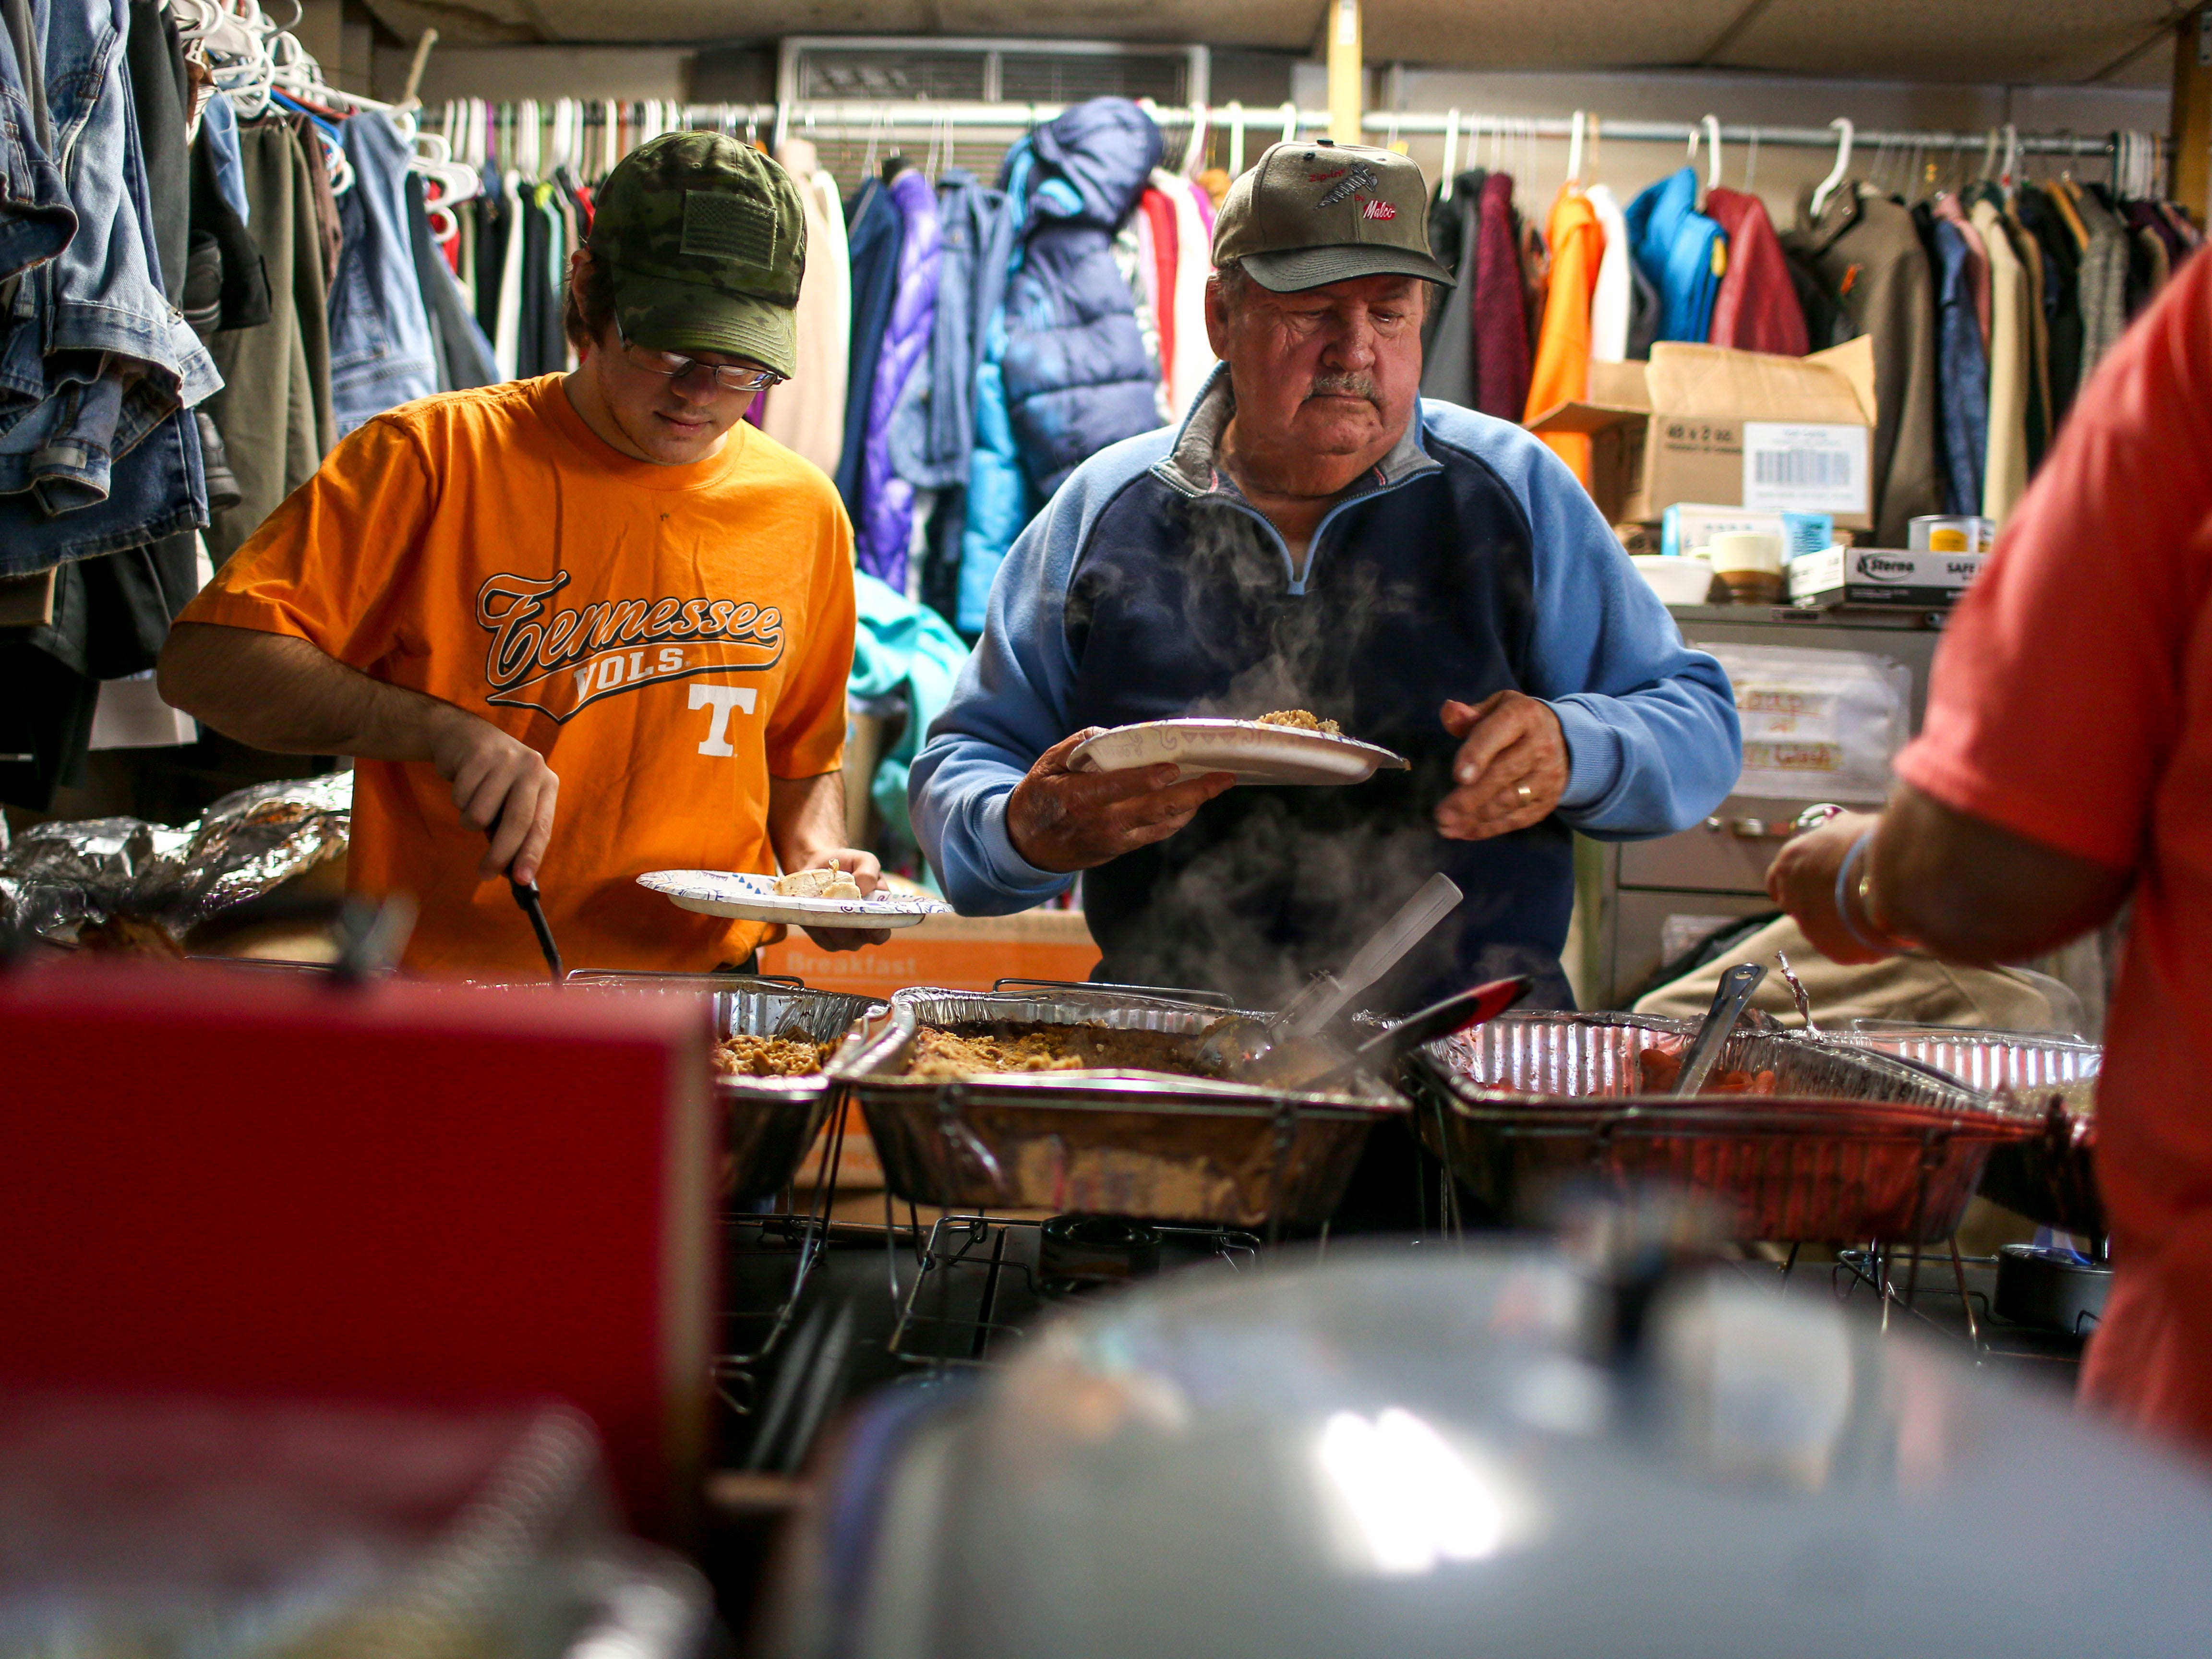 Gary Jack, right, prepares plates of food with other volunteers at the annual Thanksgiving meal put on by Safe Harbor Day Mission in Jackson, Tenn., on Wednesday, Nov. 21, 2018.